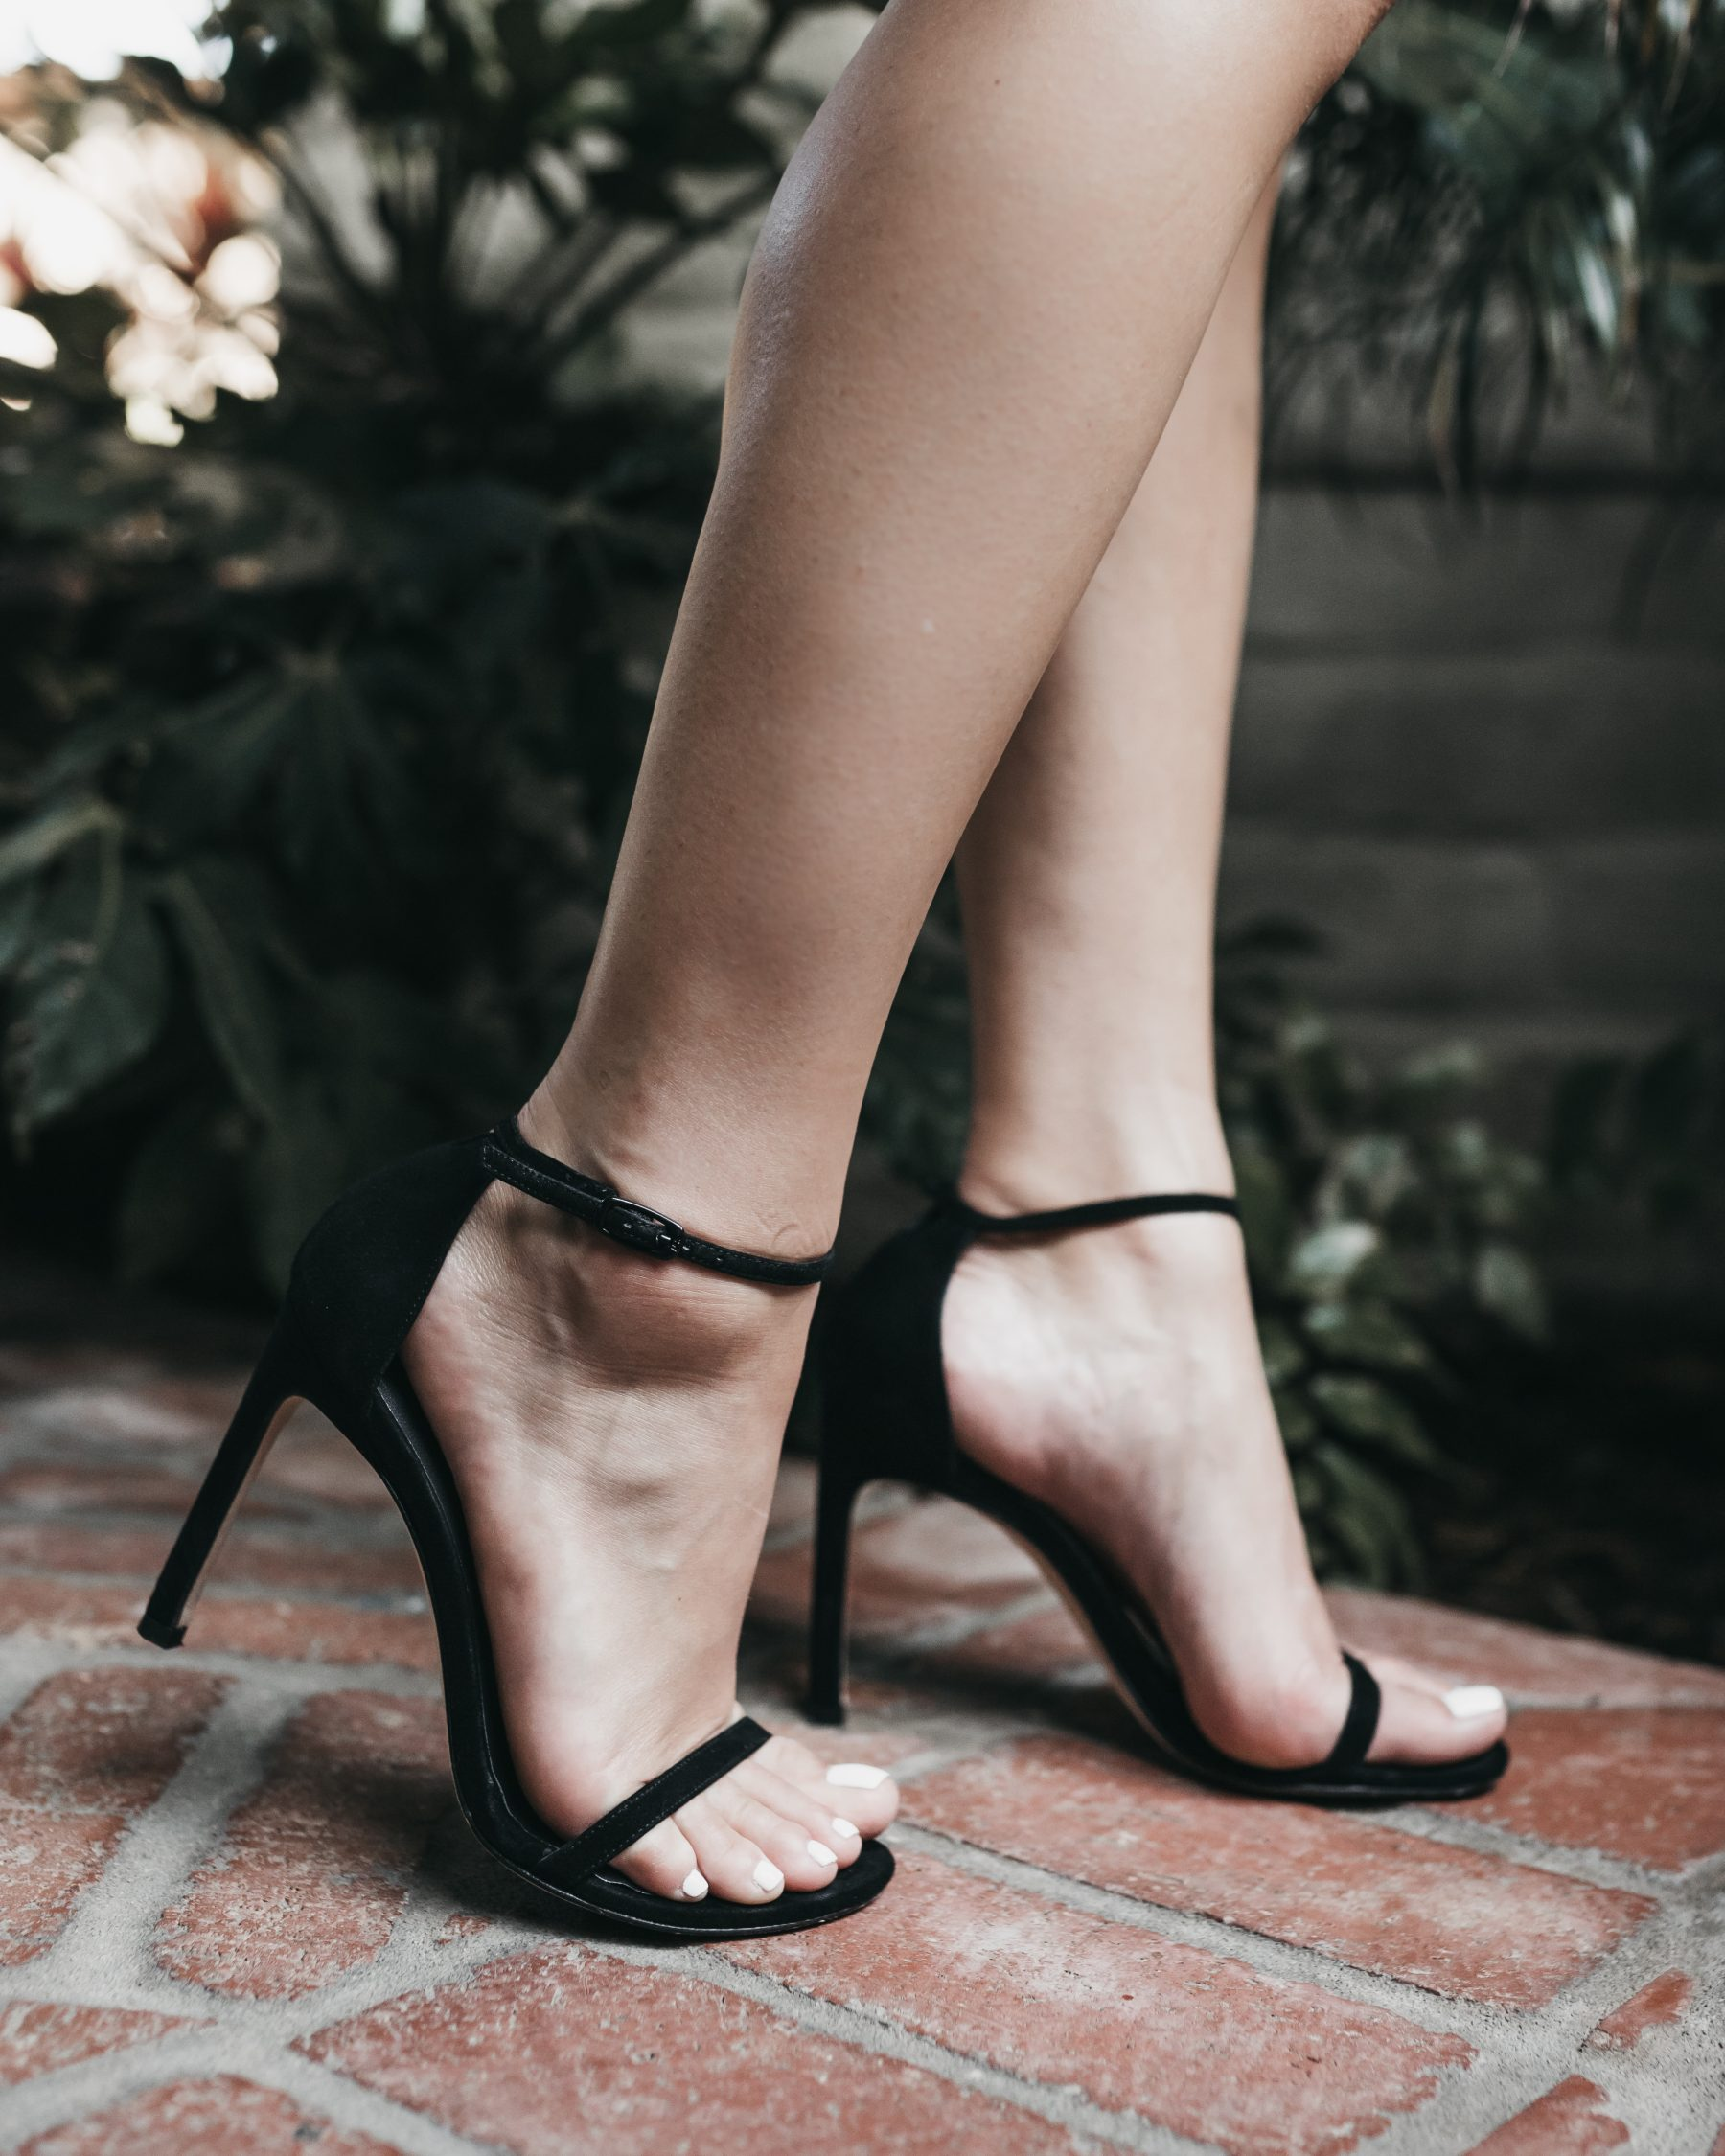 Houston fashion blogger Uptown with Elly Brown wears a black Stuart Weitzman Nudistsong Ankle Strap Sandal